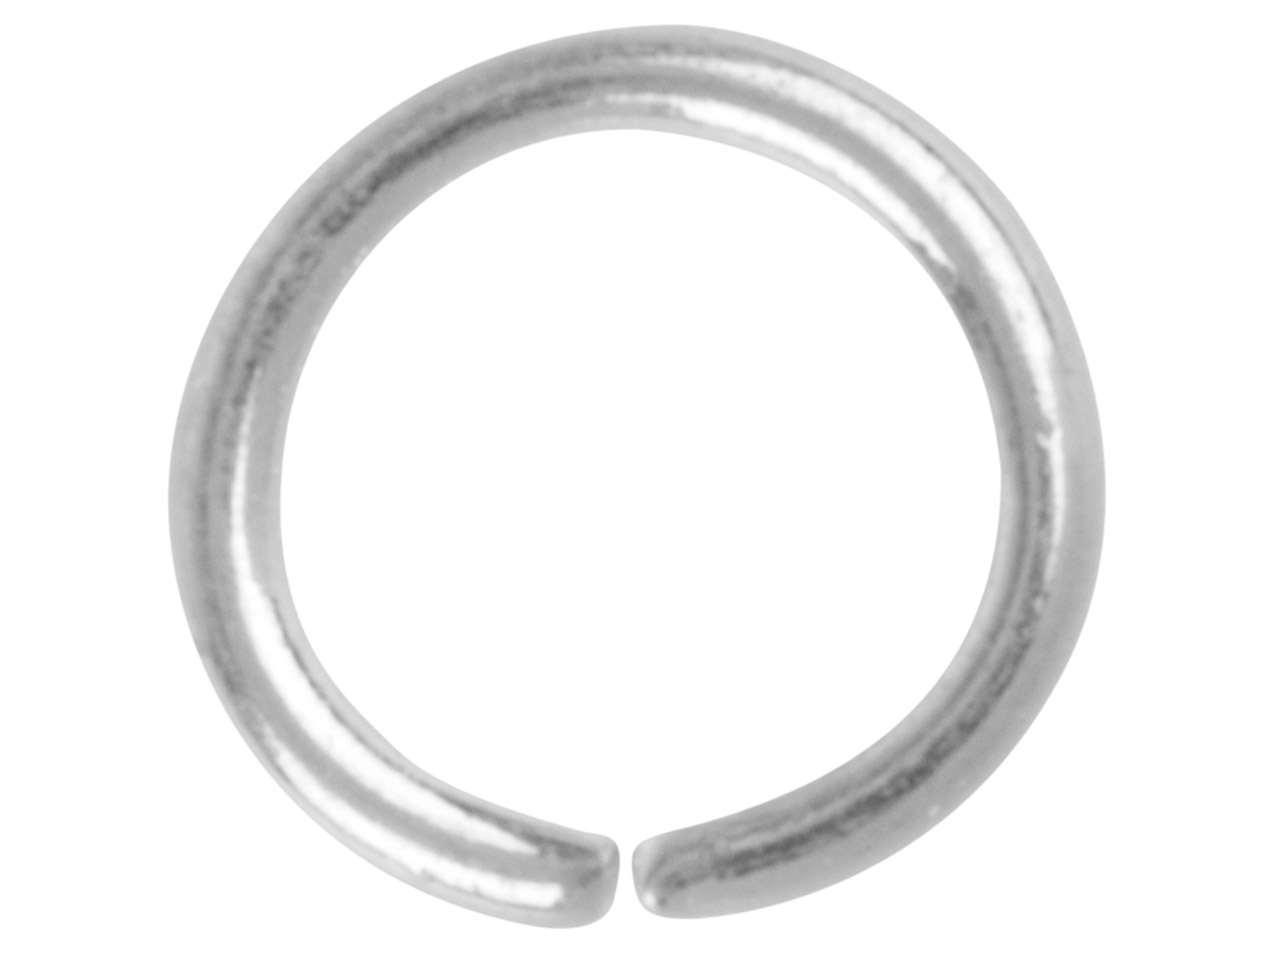 Silver Plated Jump Ring Round 7mm  Pack of 100,